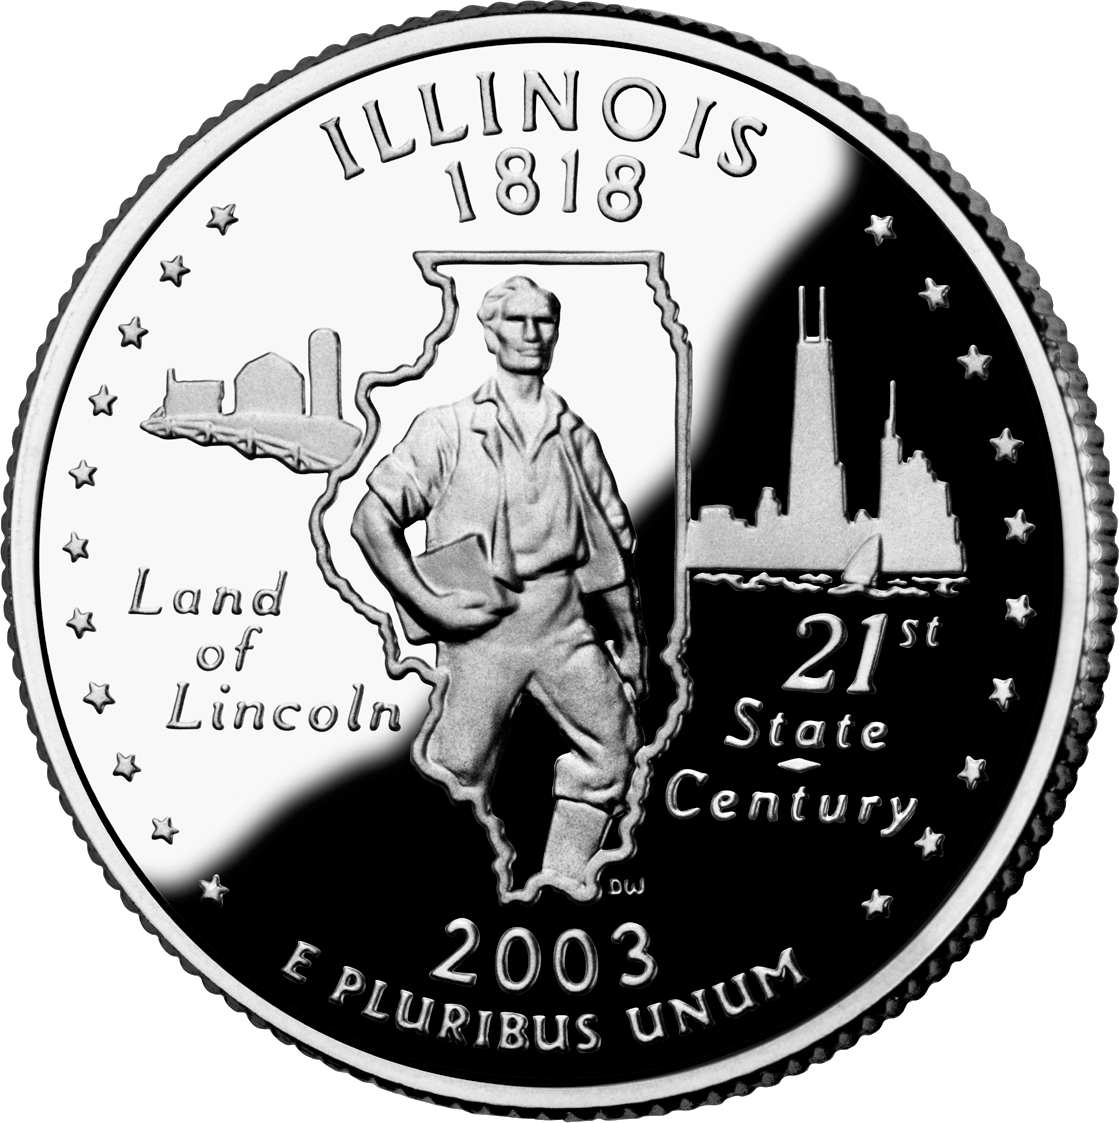 Illinois' state quarter